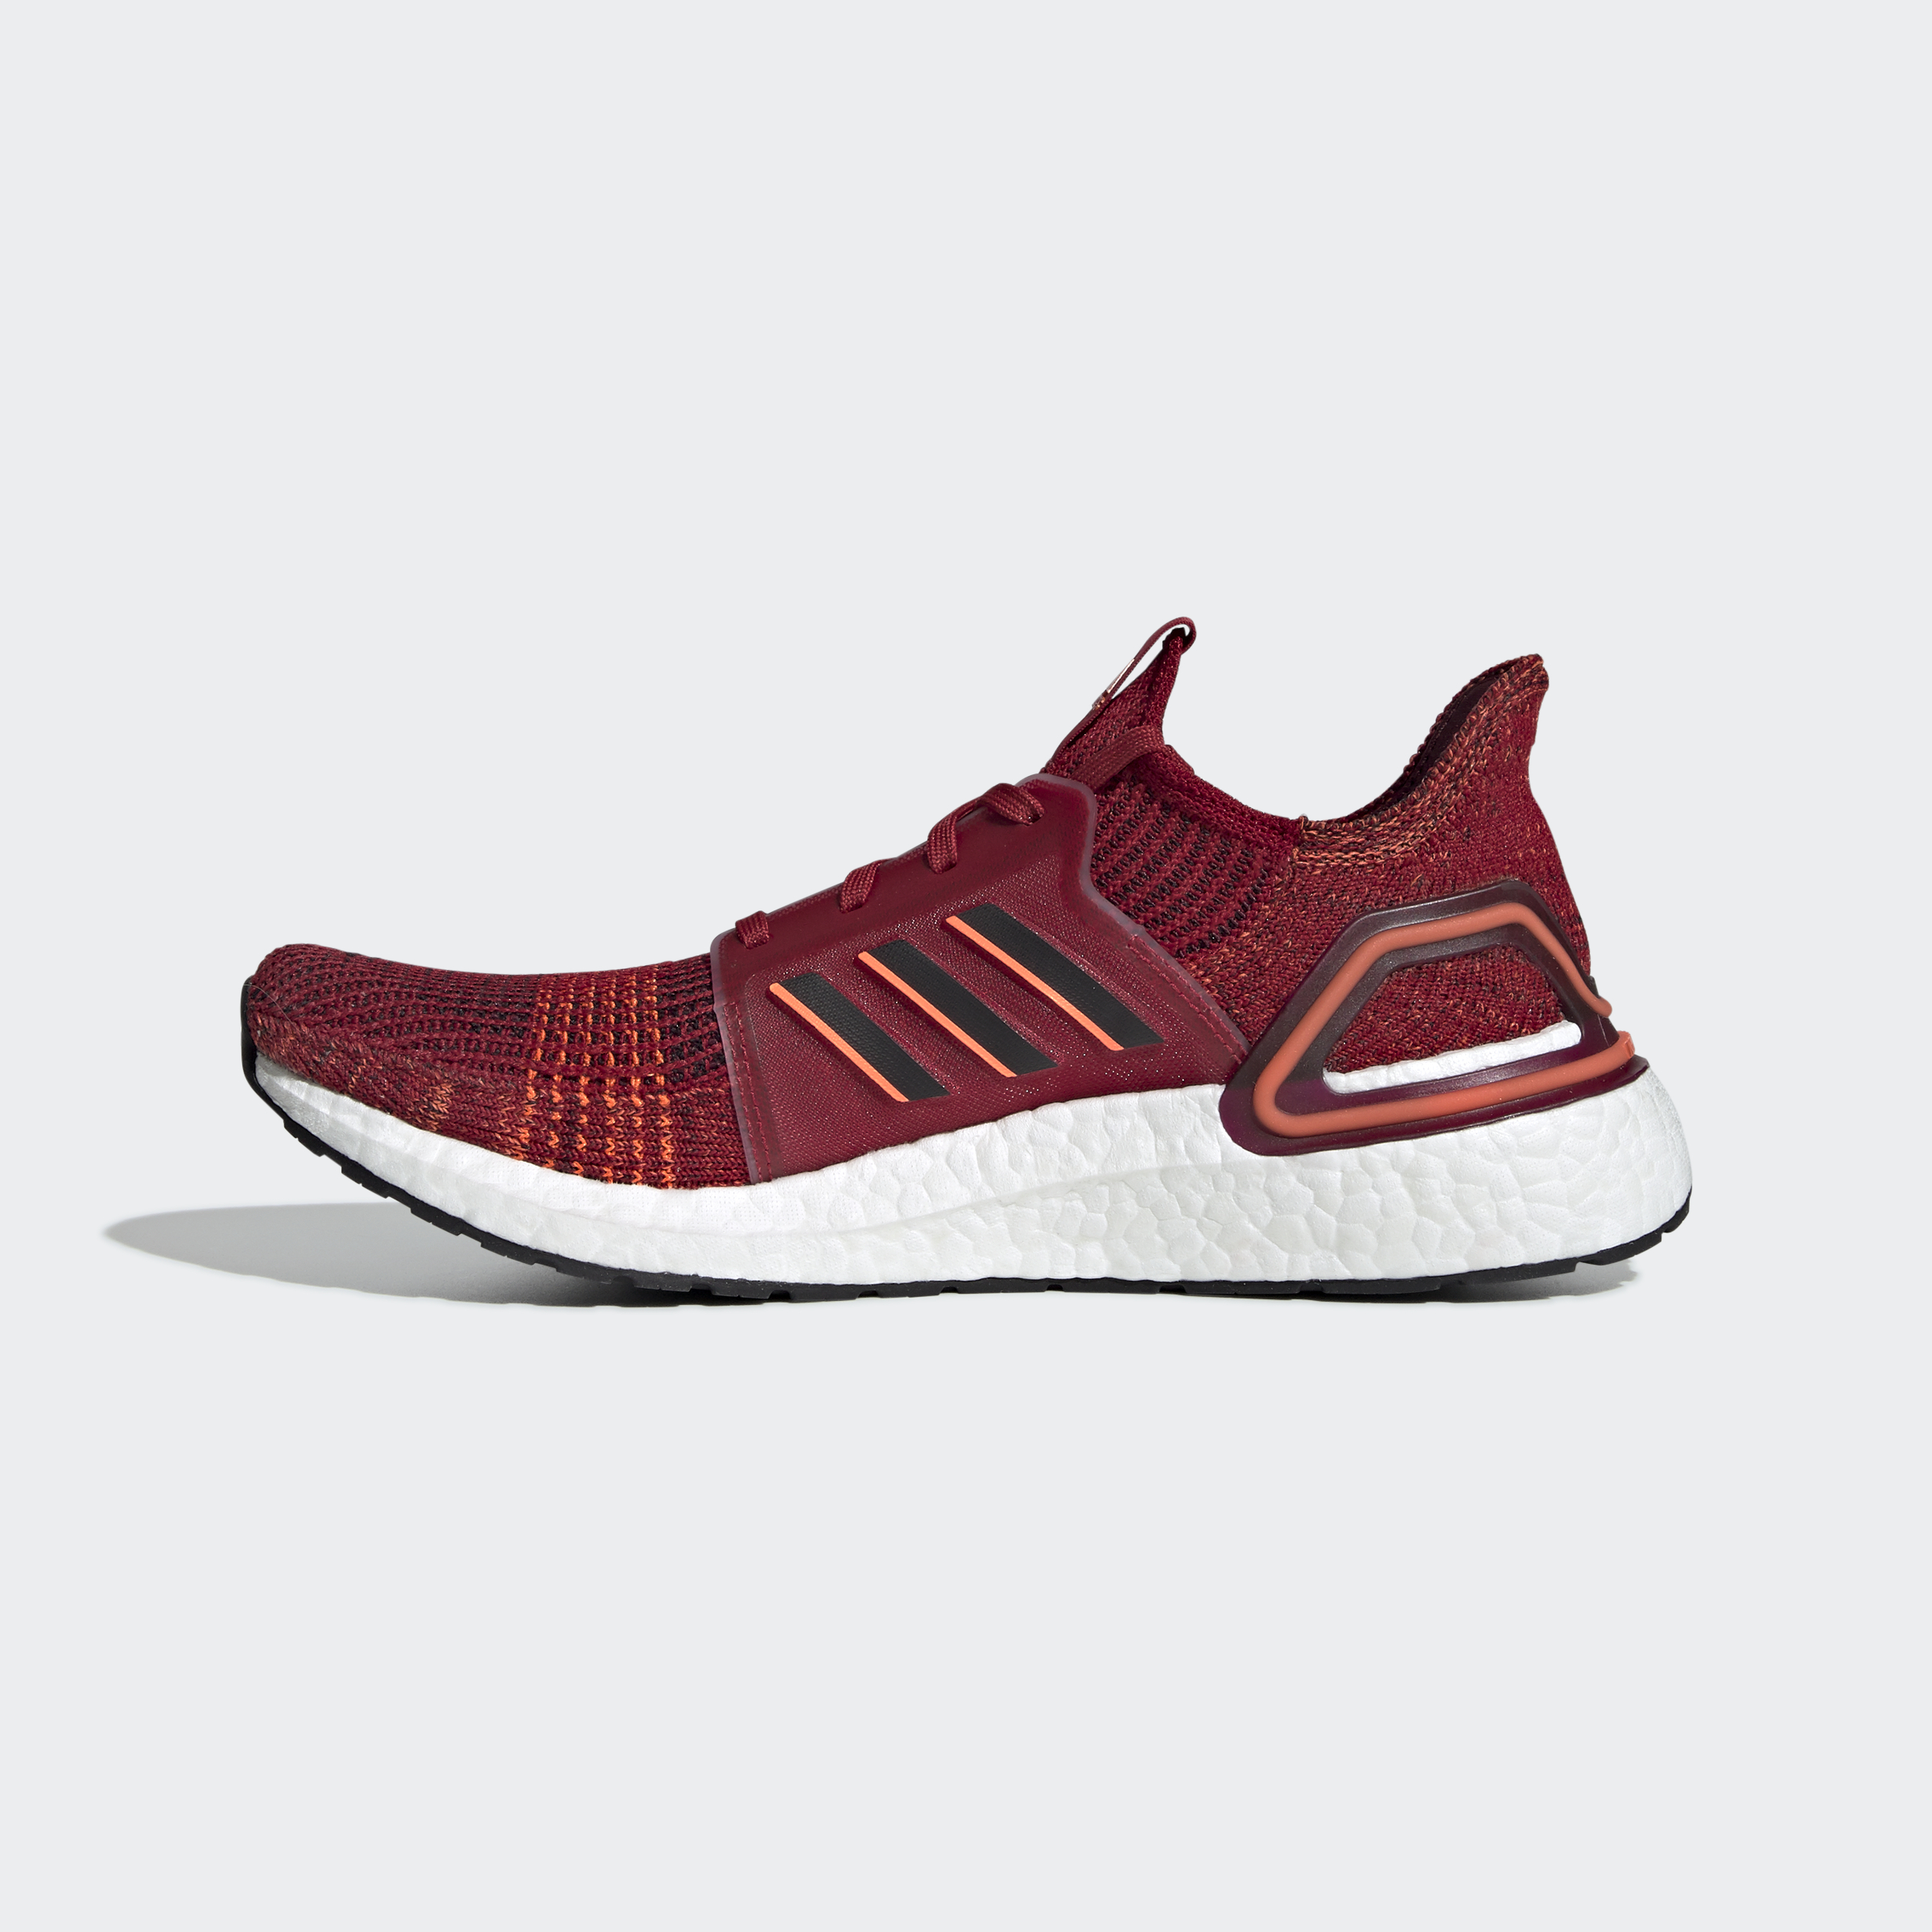 adidas-Ultraboost-19-Shoes-Athletic-amp-Sneakers thumbnail 94